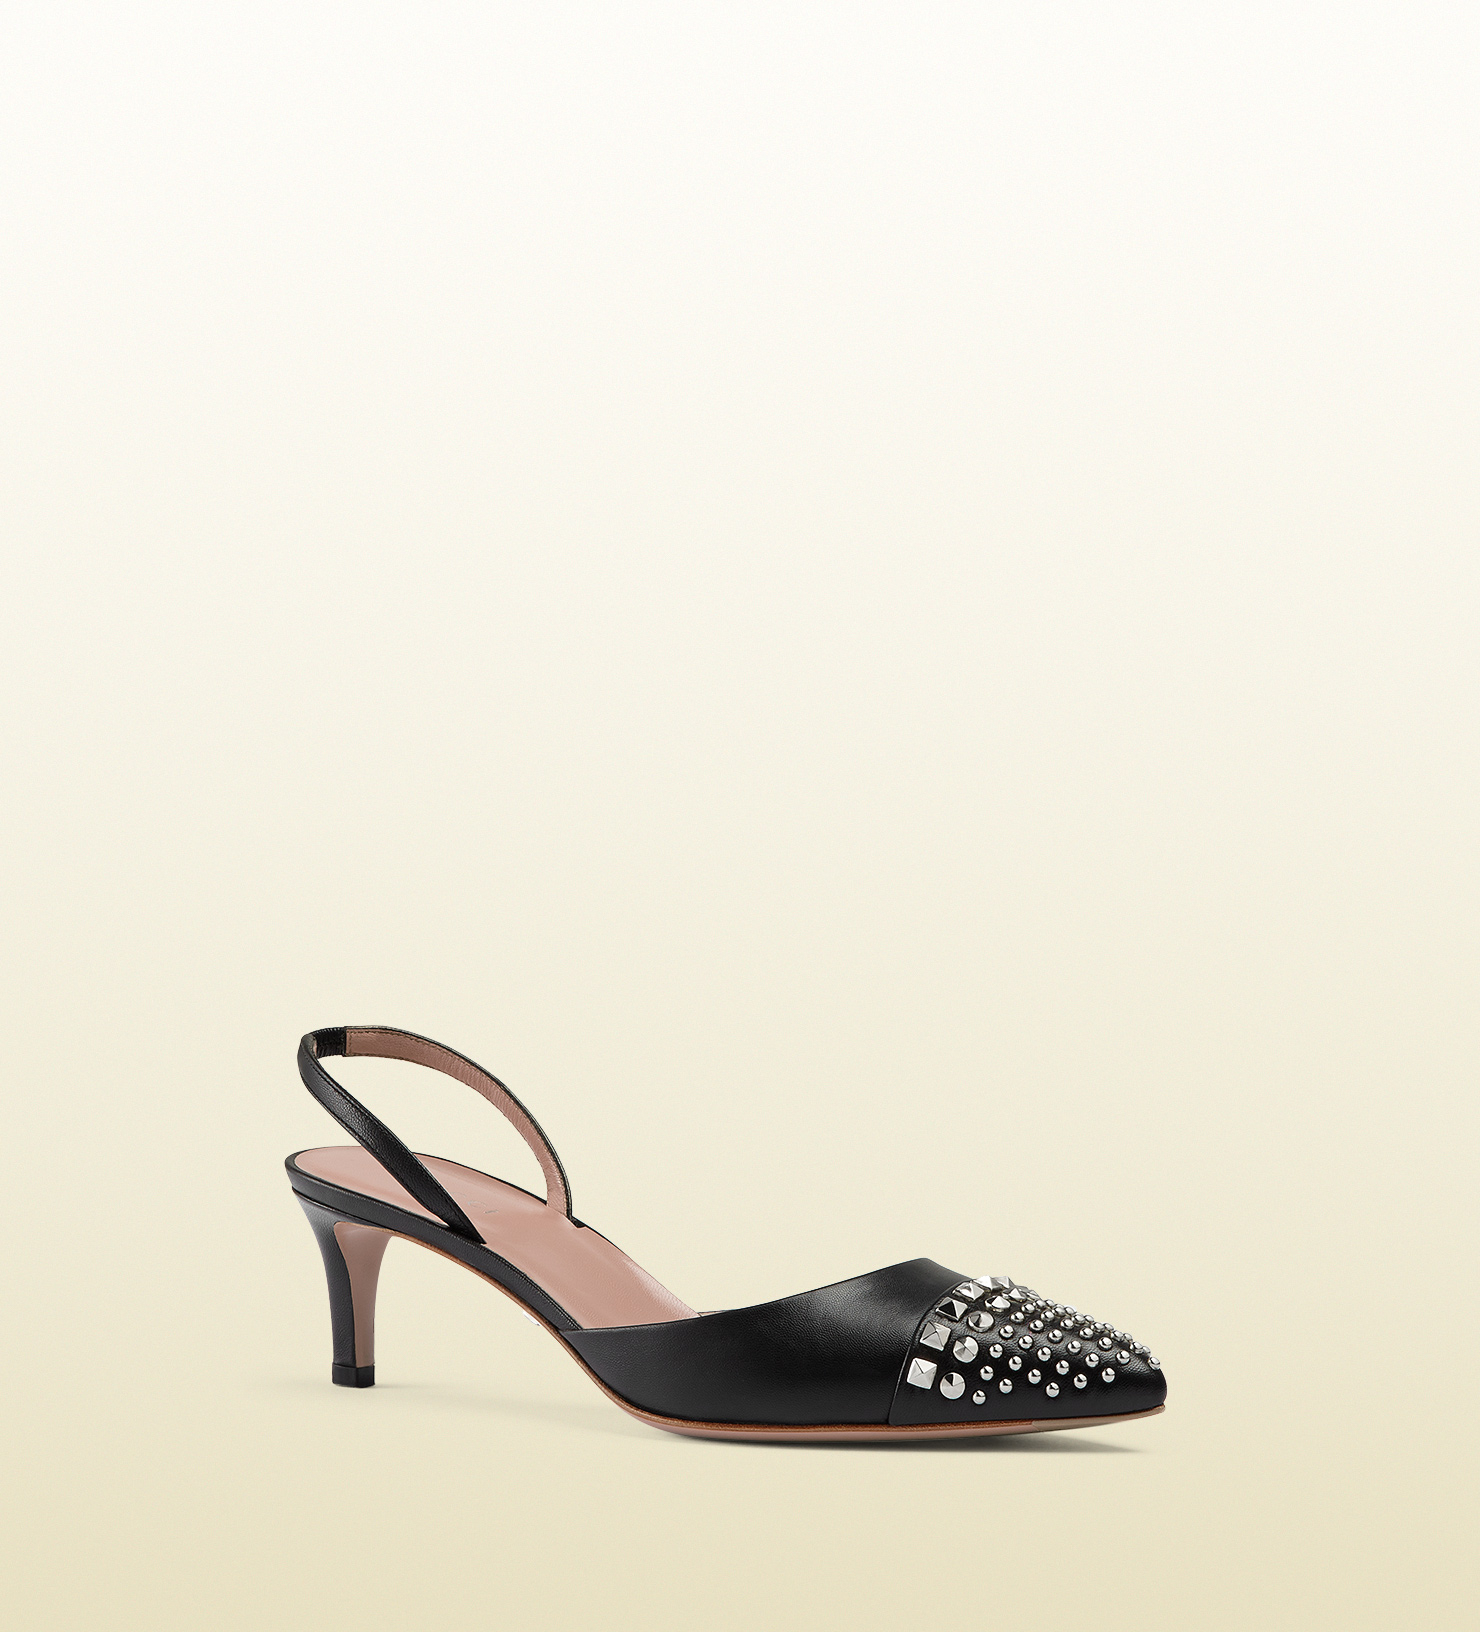 6fd2589231 Gucci Studded Leather Mid-heel Slingback Pump in Black - Lyst